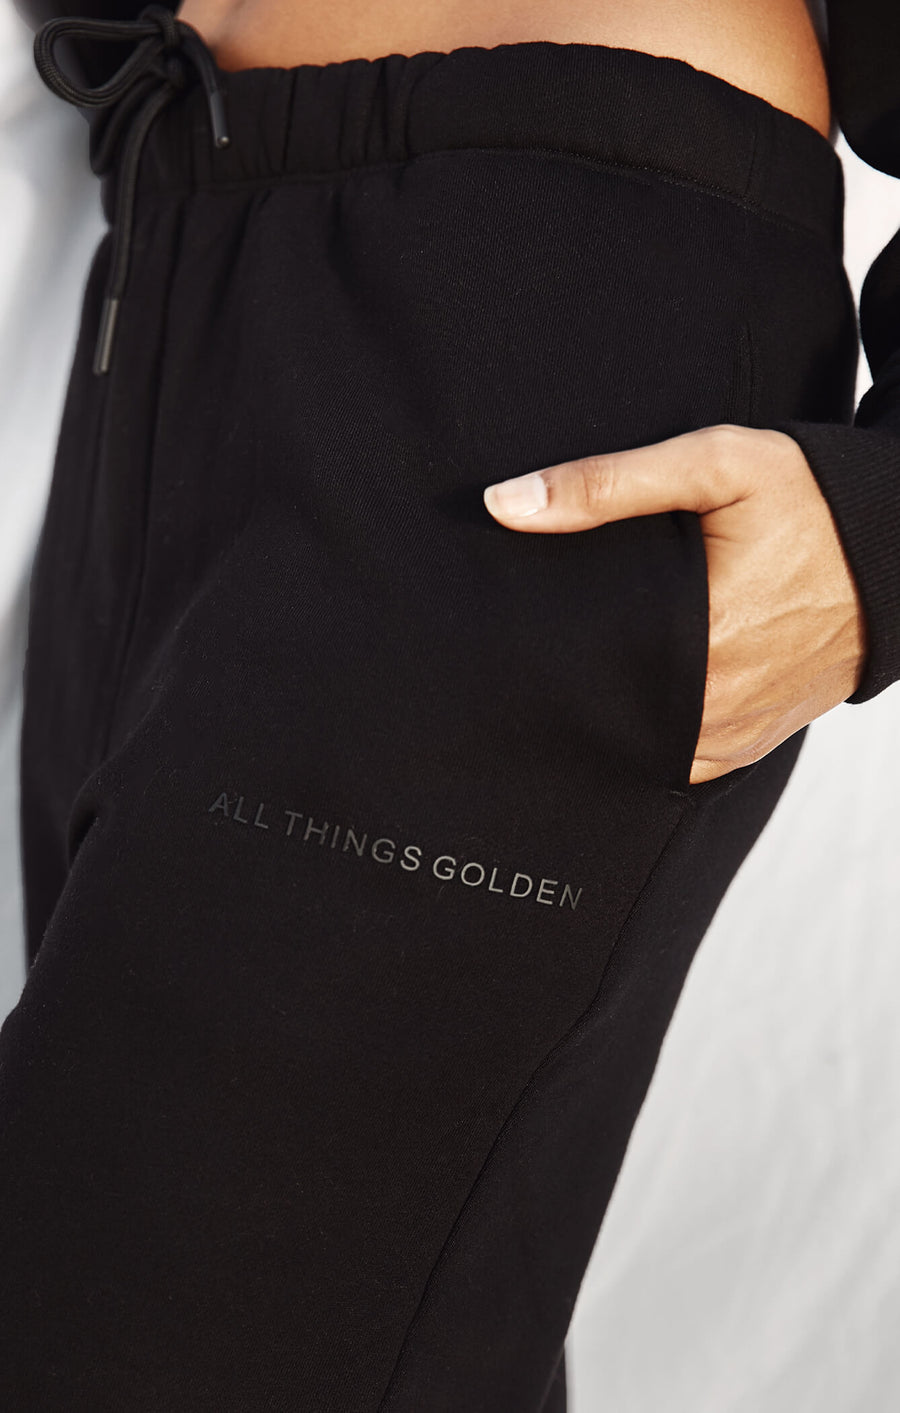 THE A.T.G TRACK PANTS - BLACK